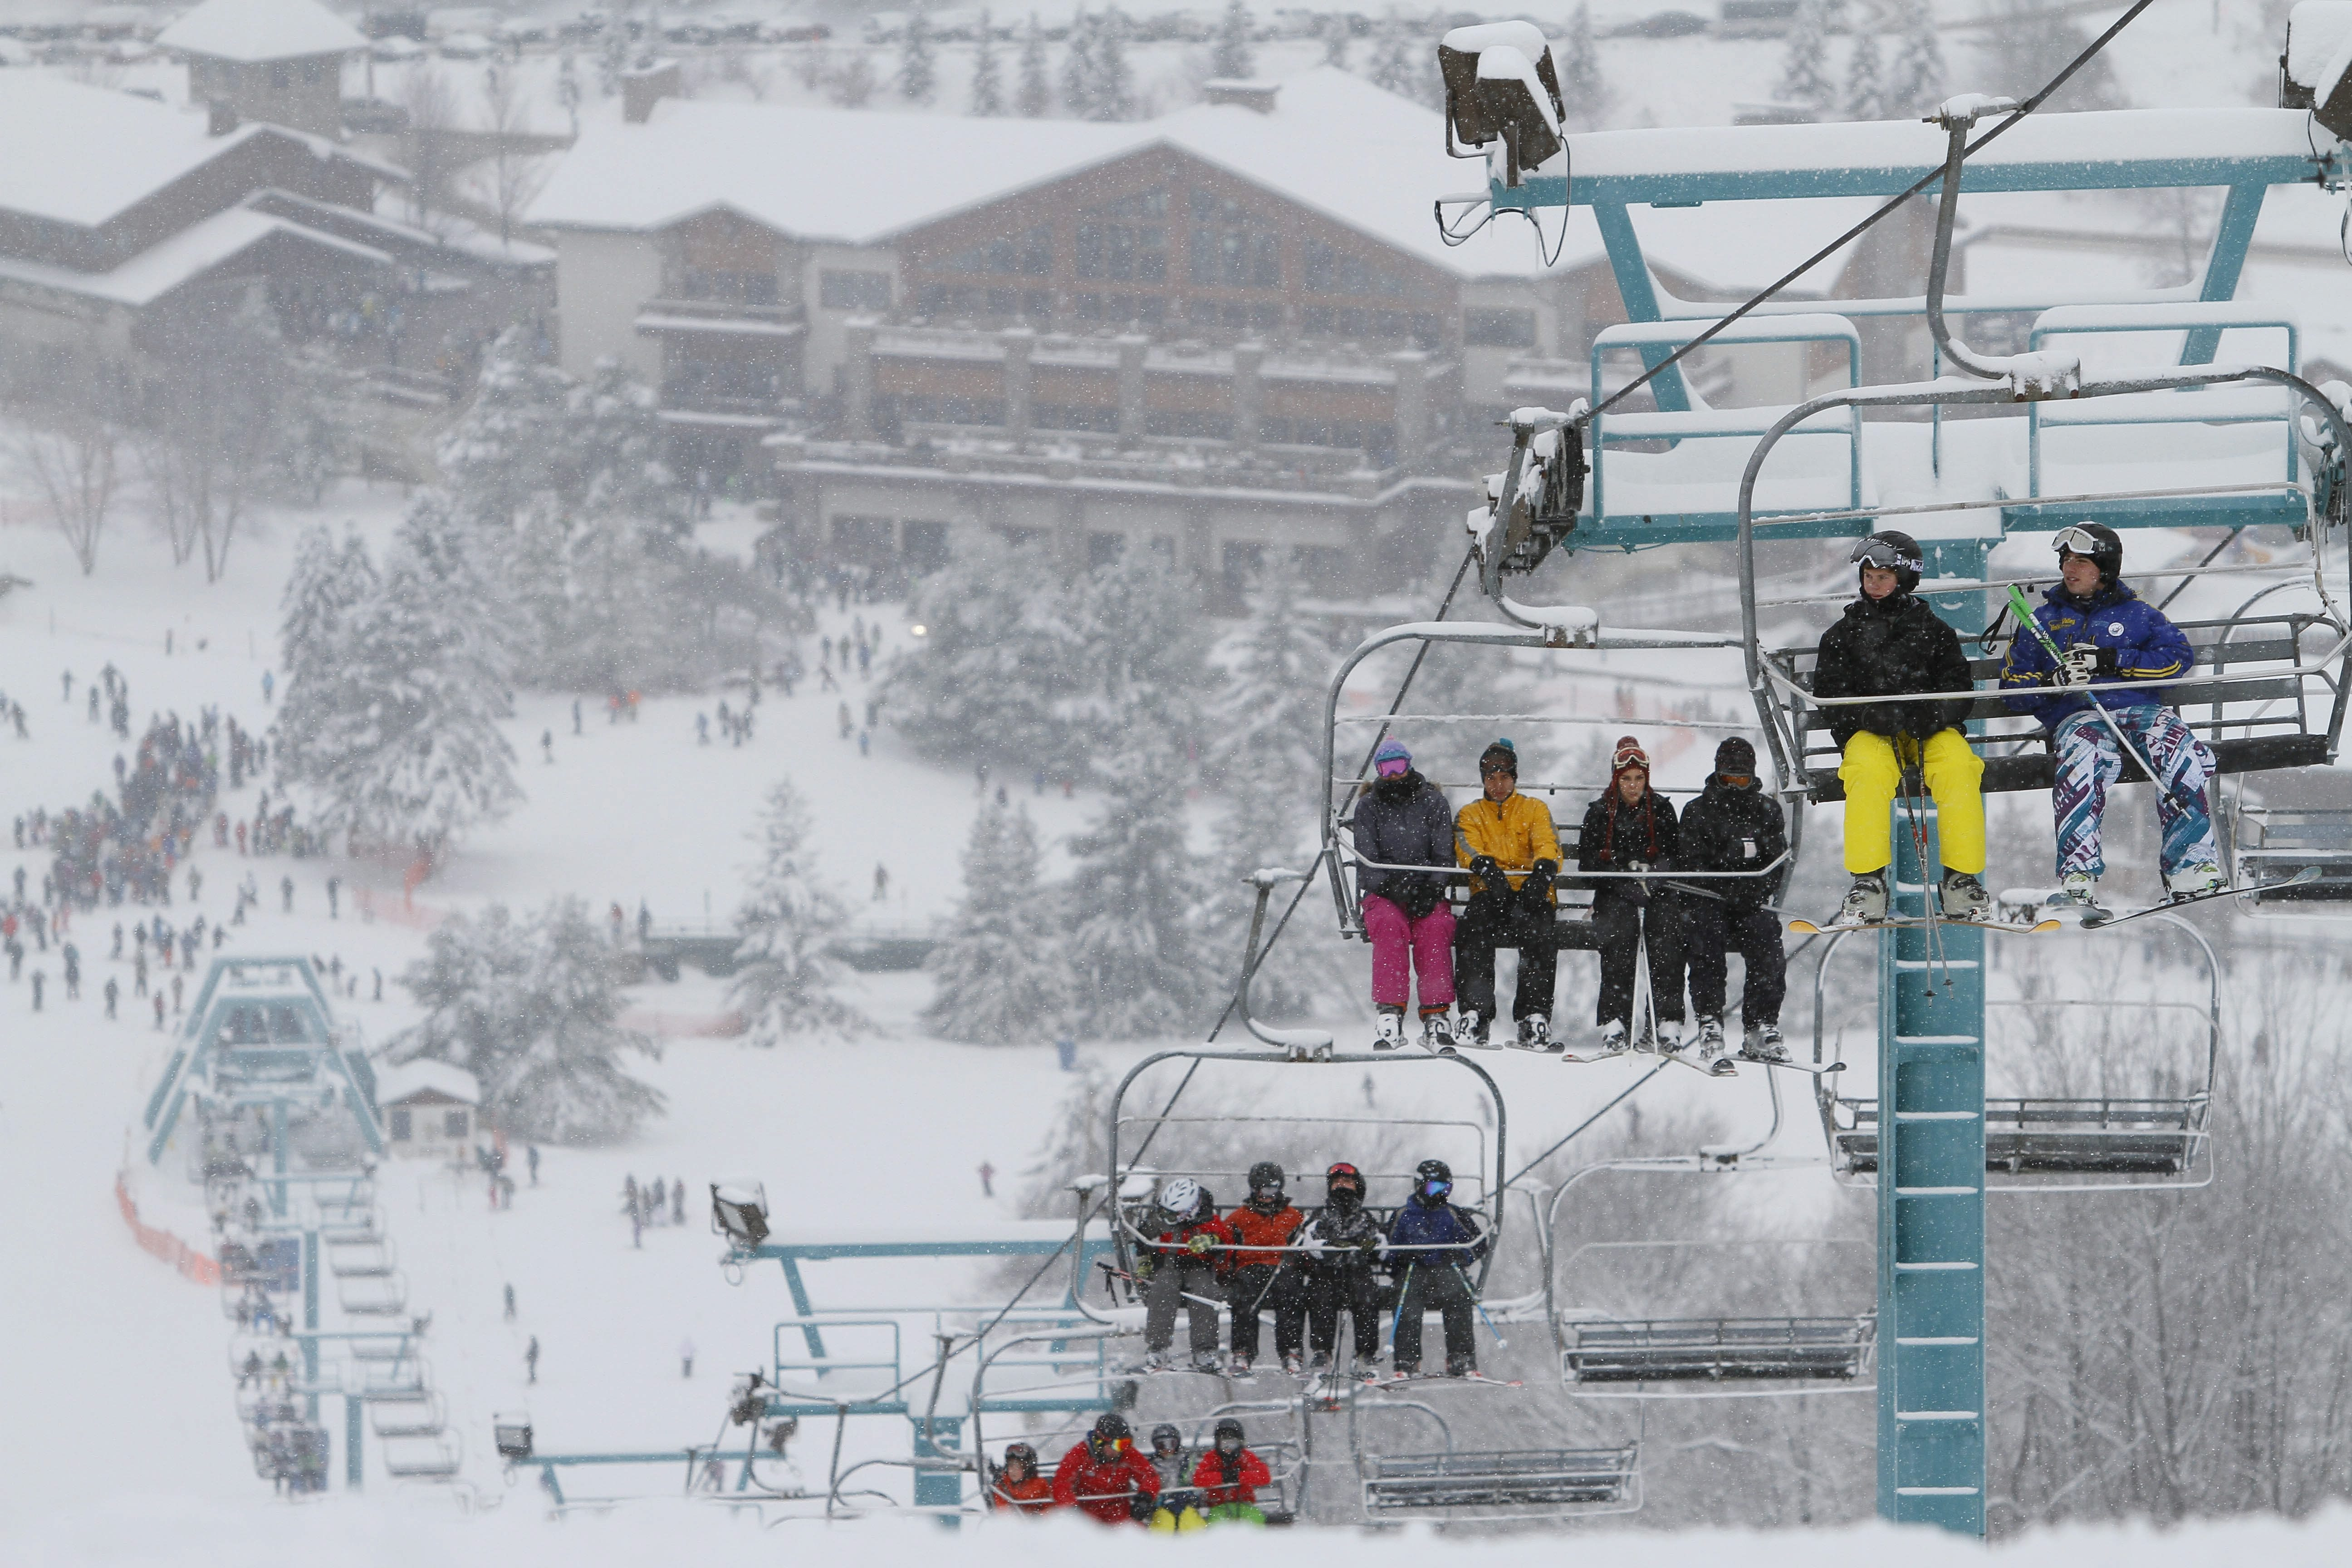 """Holiday Valley's """"quad"""" lifts are one of the features earning the Ellicottville resort a high ranking in Ski Magazine, along with accessibility, snow, family programs, lodging and the après-ski scene."""